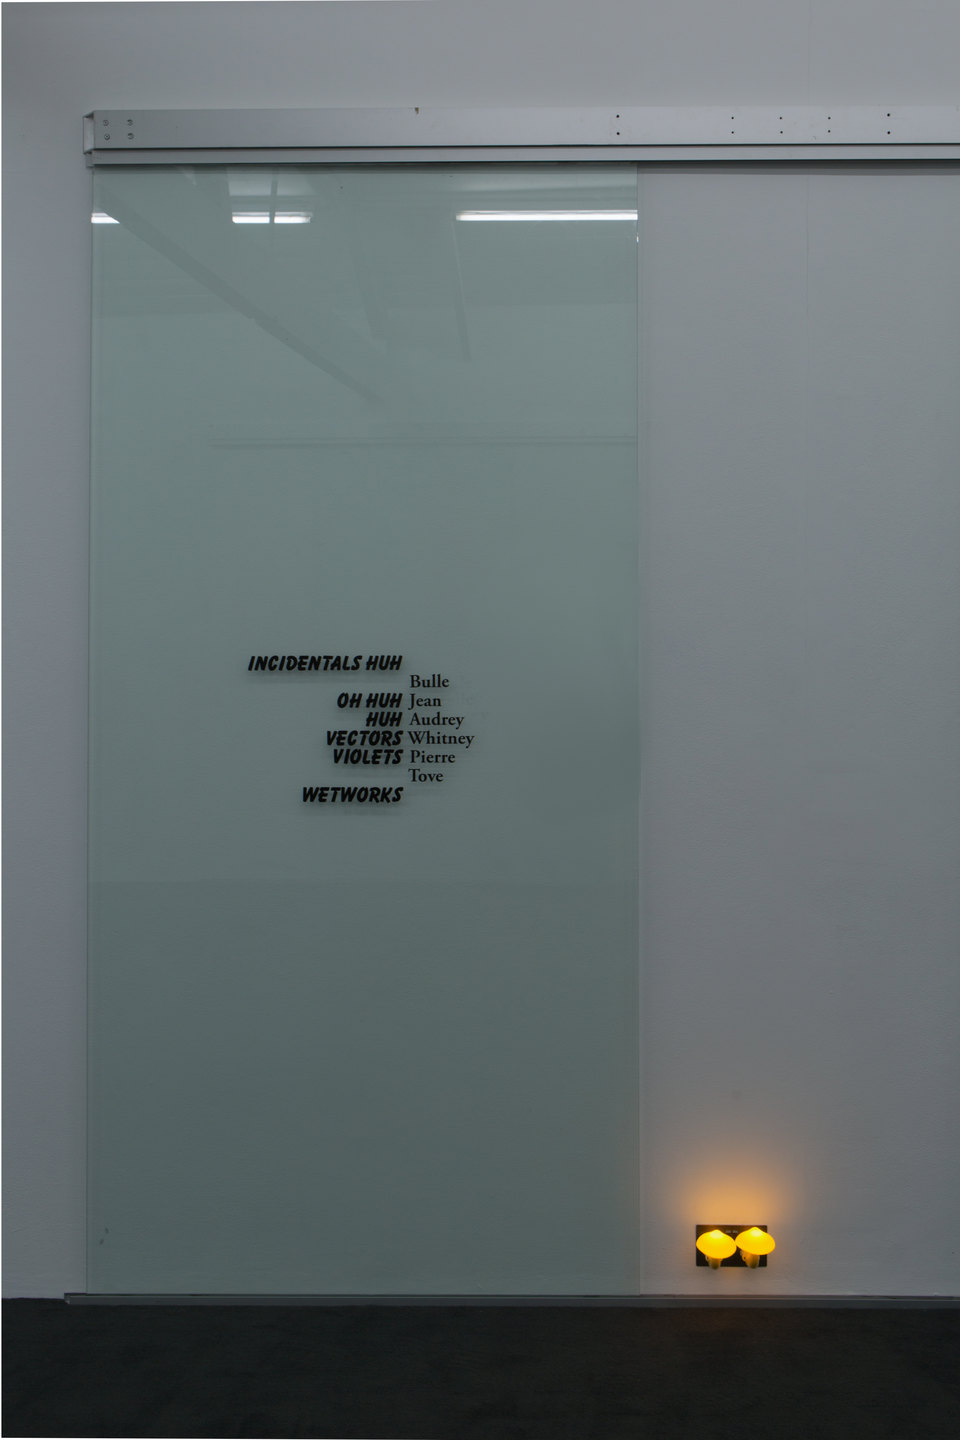 Name, 2016, Ghislaine Leung, Cell Project Space